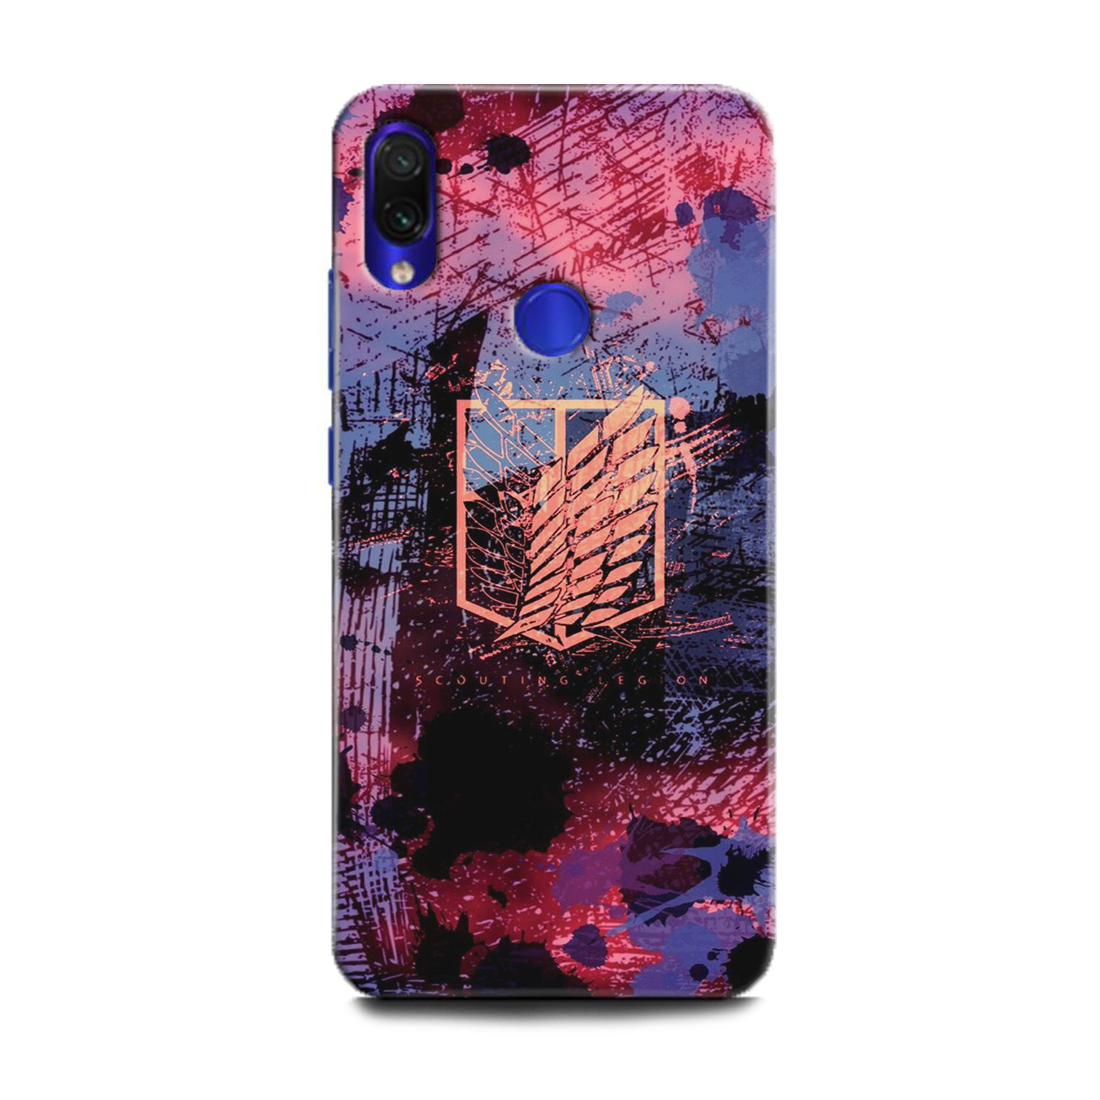 INDICRAFT Mobile Back Cover For Mi Redmi Y3 / Hard Case (Anime, Aot, Art, Texture, Abstract, Colorful, Wall, M1810F6I) (AB-RedmiY3-0921)